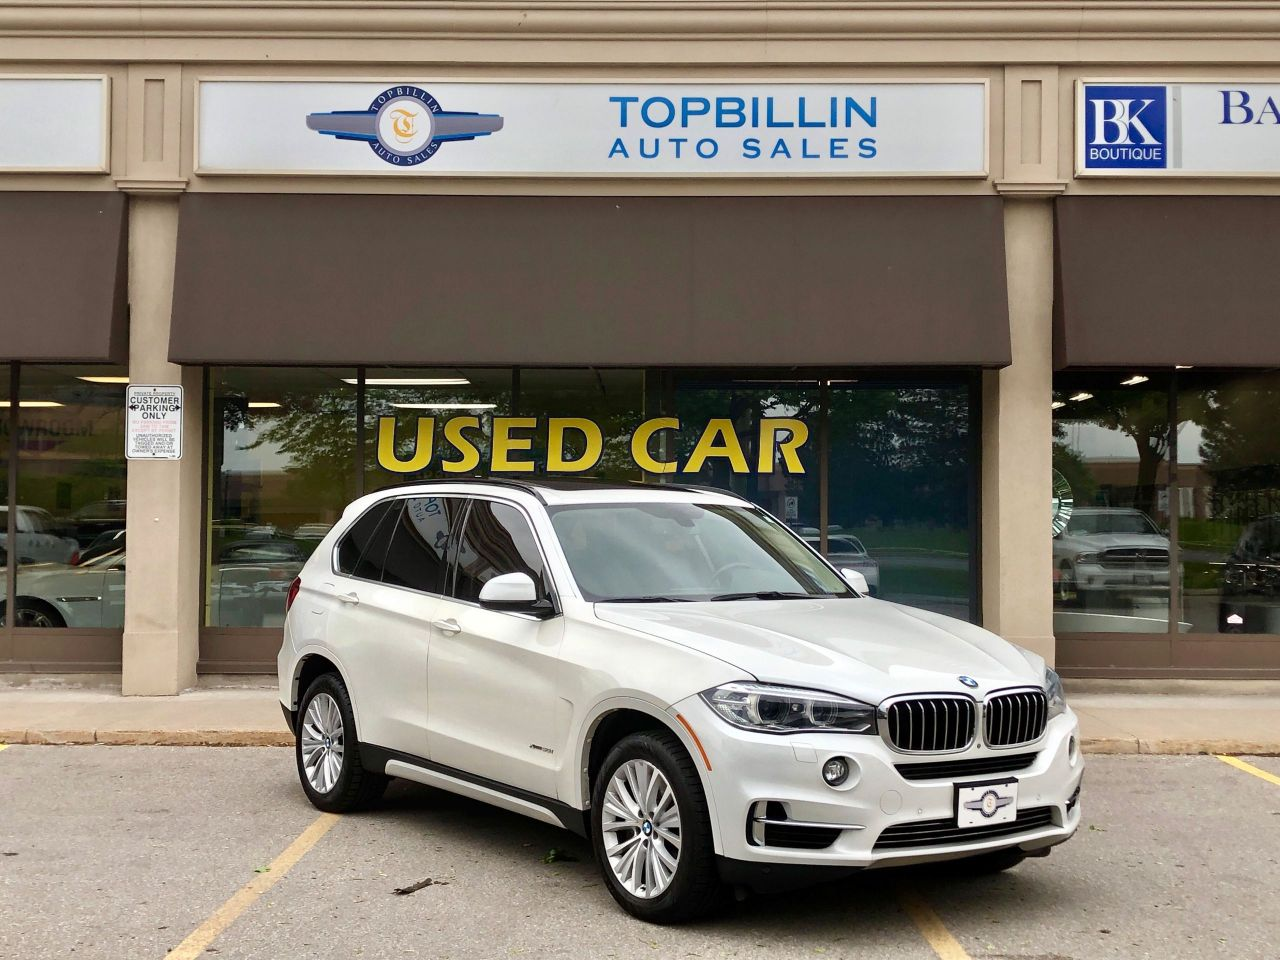 2014 BMW X5 xDrive50i, 2 Years Warranty